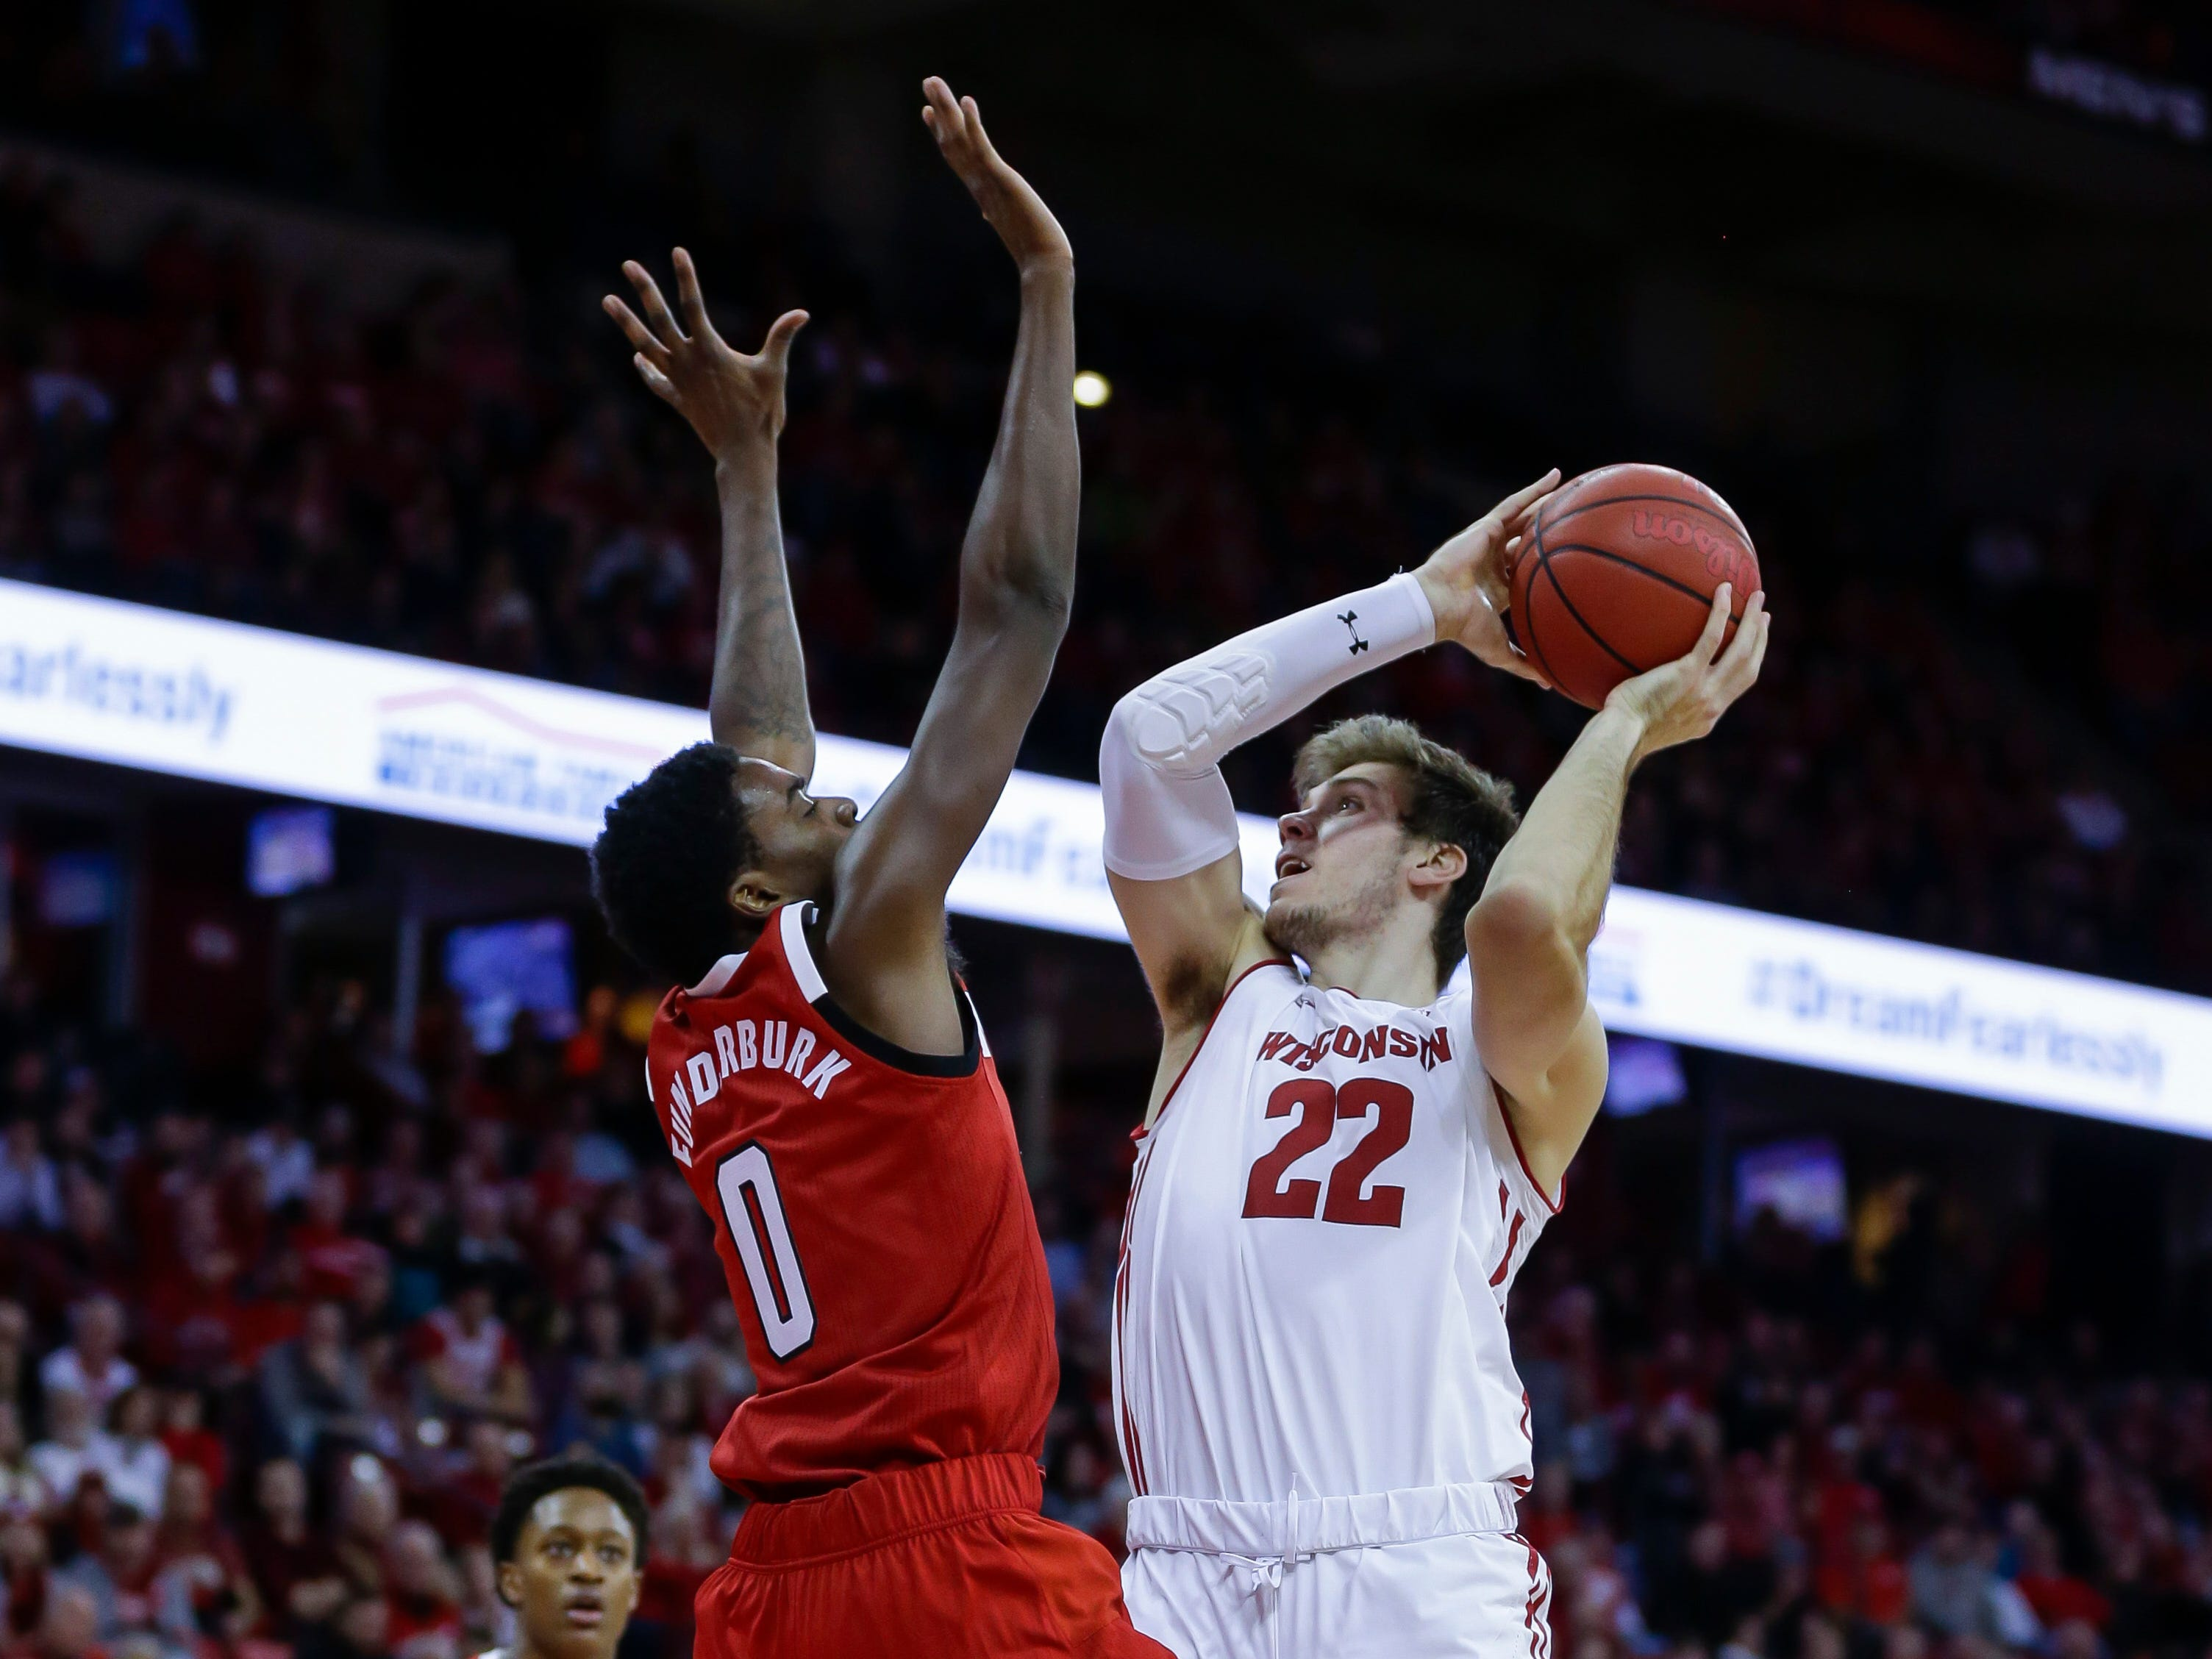 Wisconsin's Ethan Happ looks to get a shot over North Carolina State's DJ Funderburk.